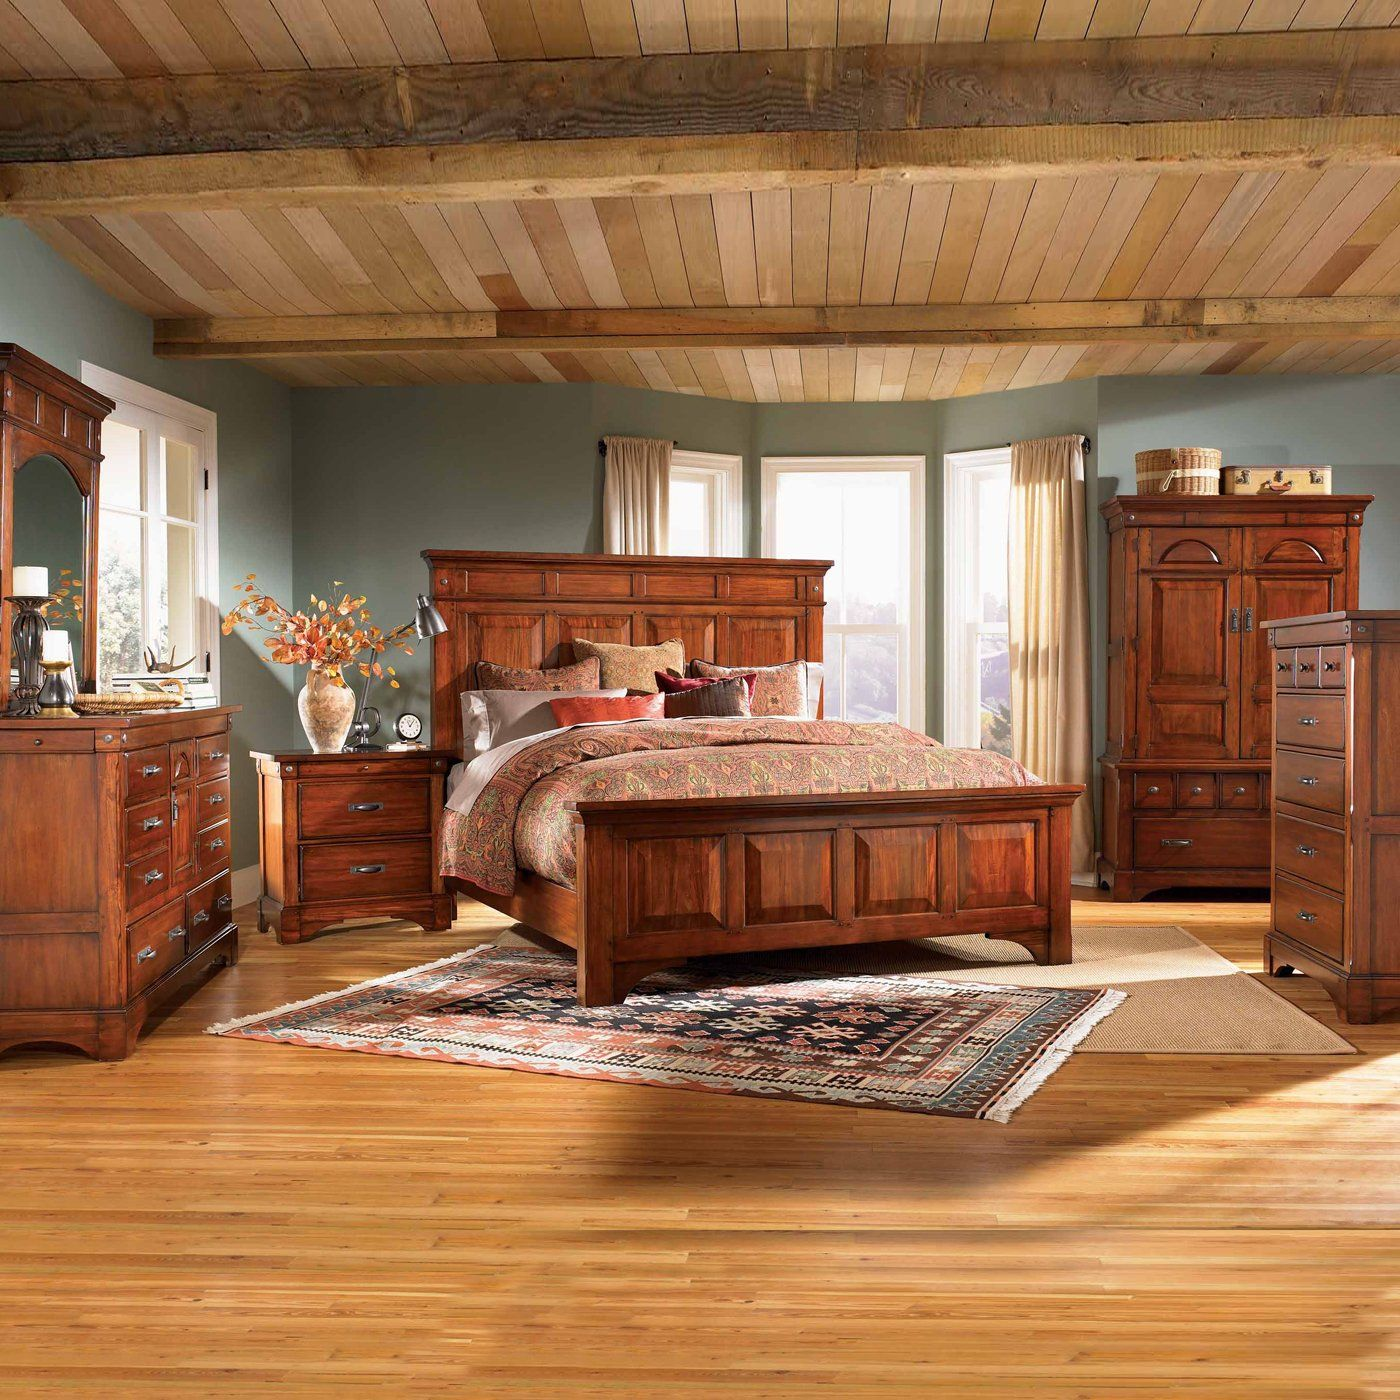 images about Beds on Pinterest Rustic bedroom furniture